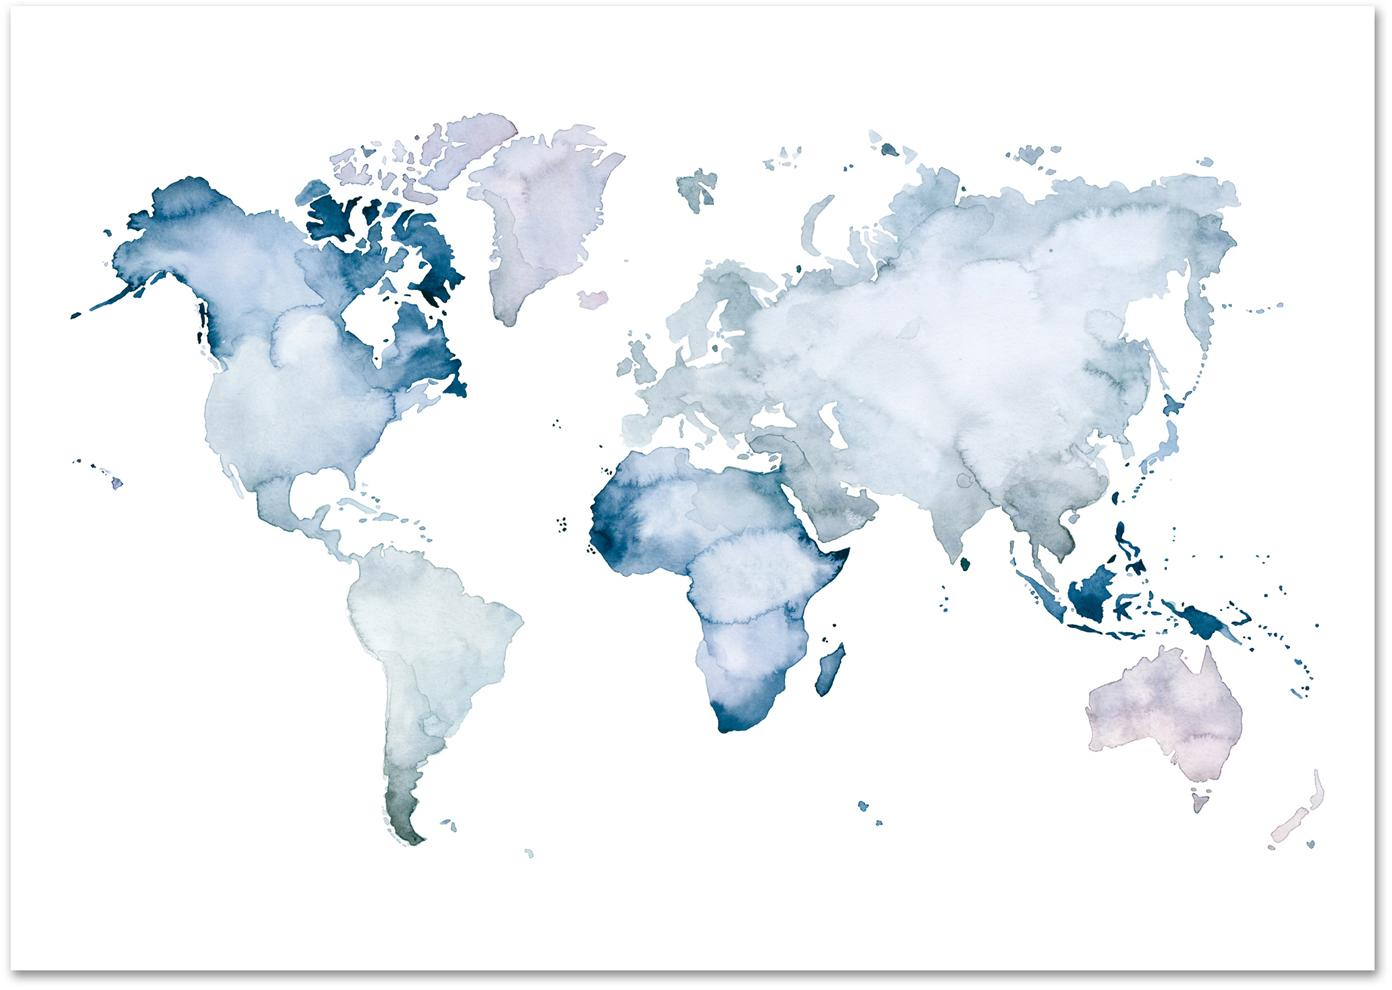 Poster World Map, Digitale print op papier, 200 g/m², Blauw, wit, 30 x 21 cm